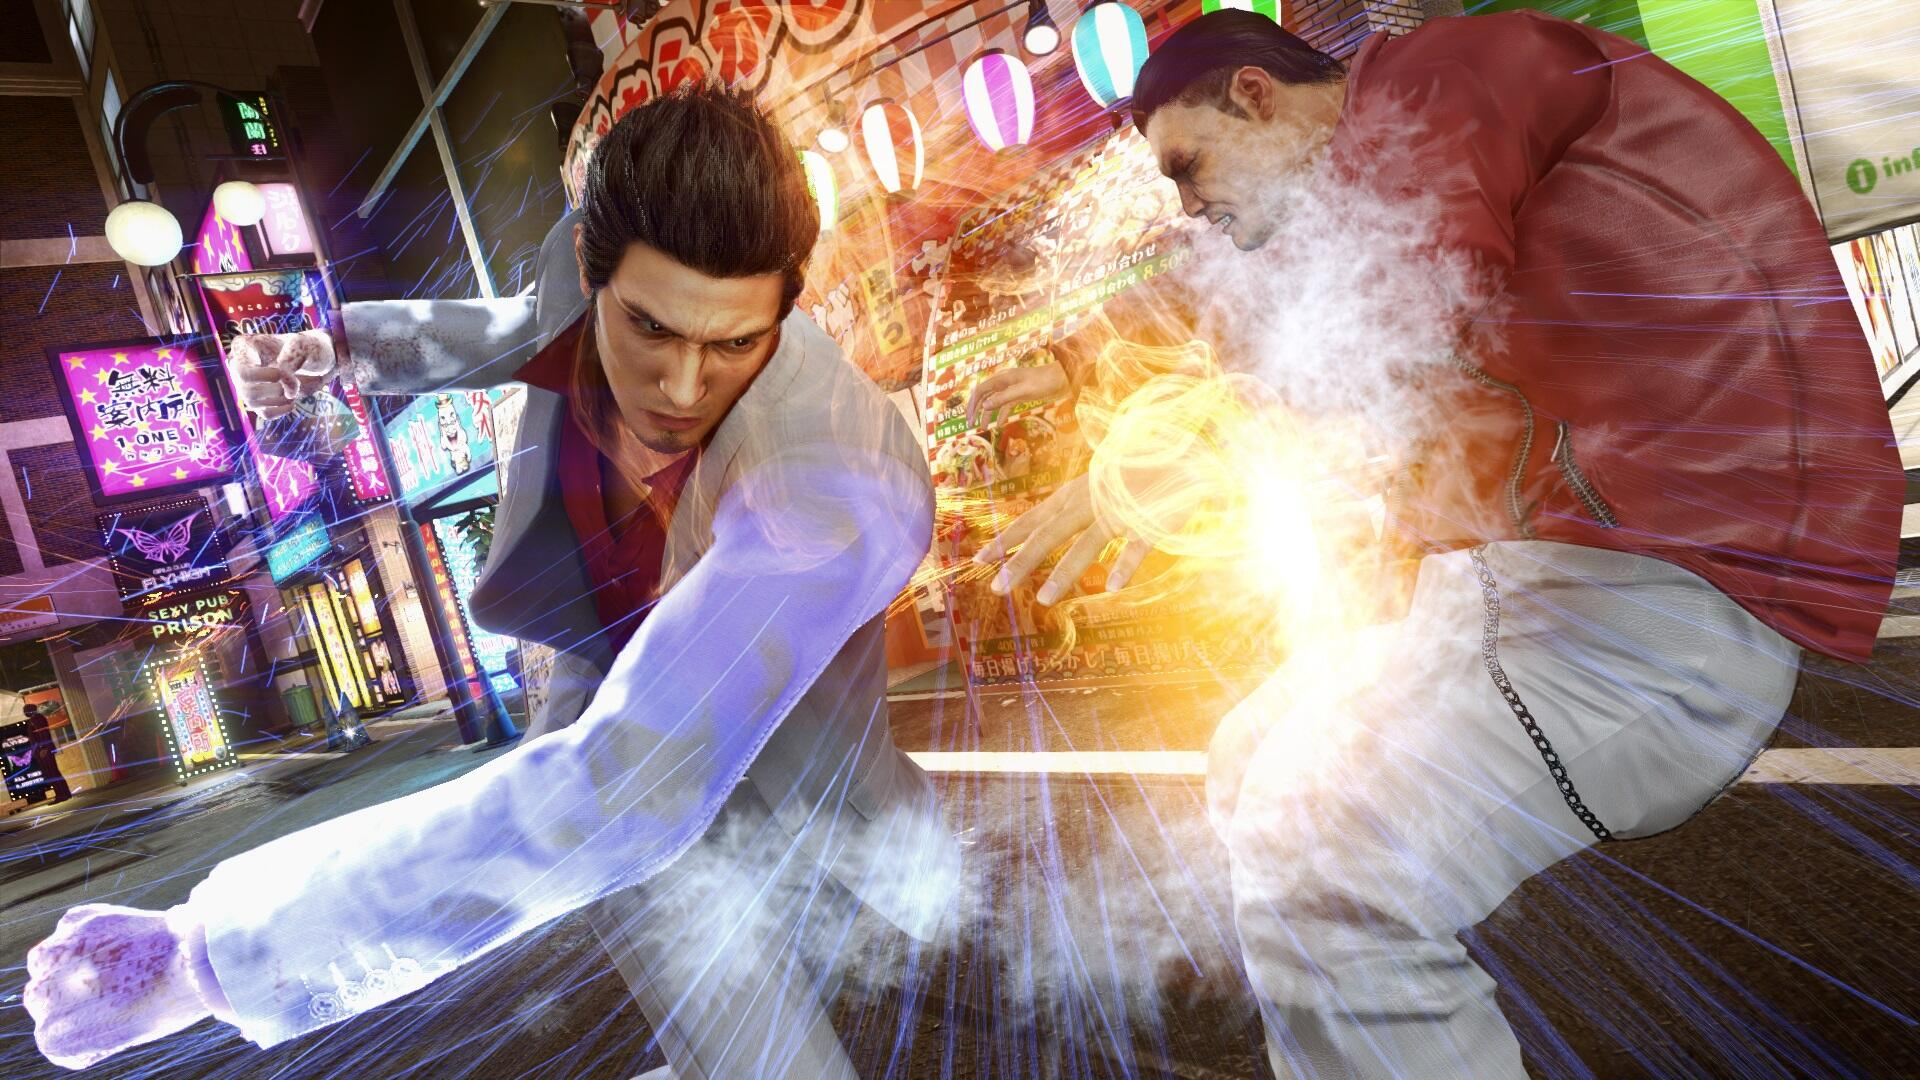 Yakuza Director: PS5 Graphics are the Best We've Ever Seen, But PS4 Will Remain Relevant